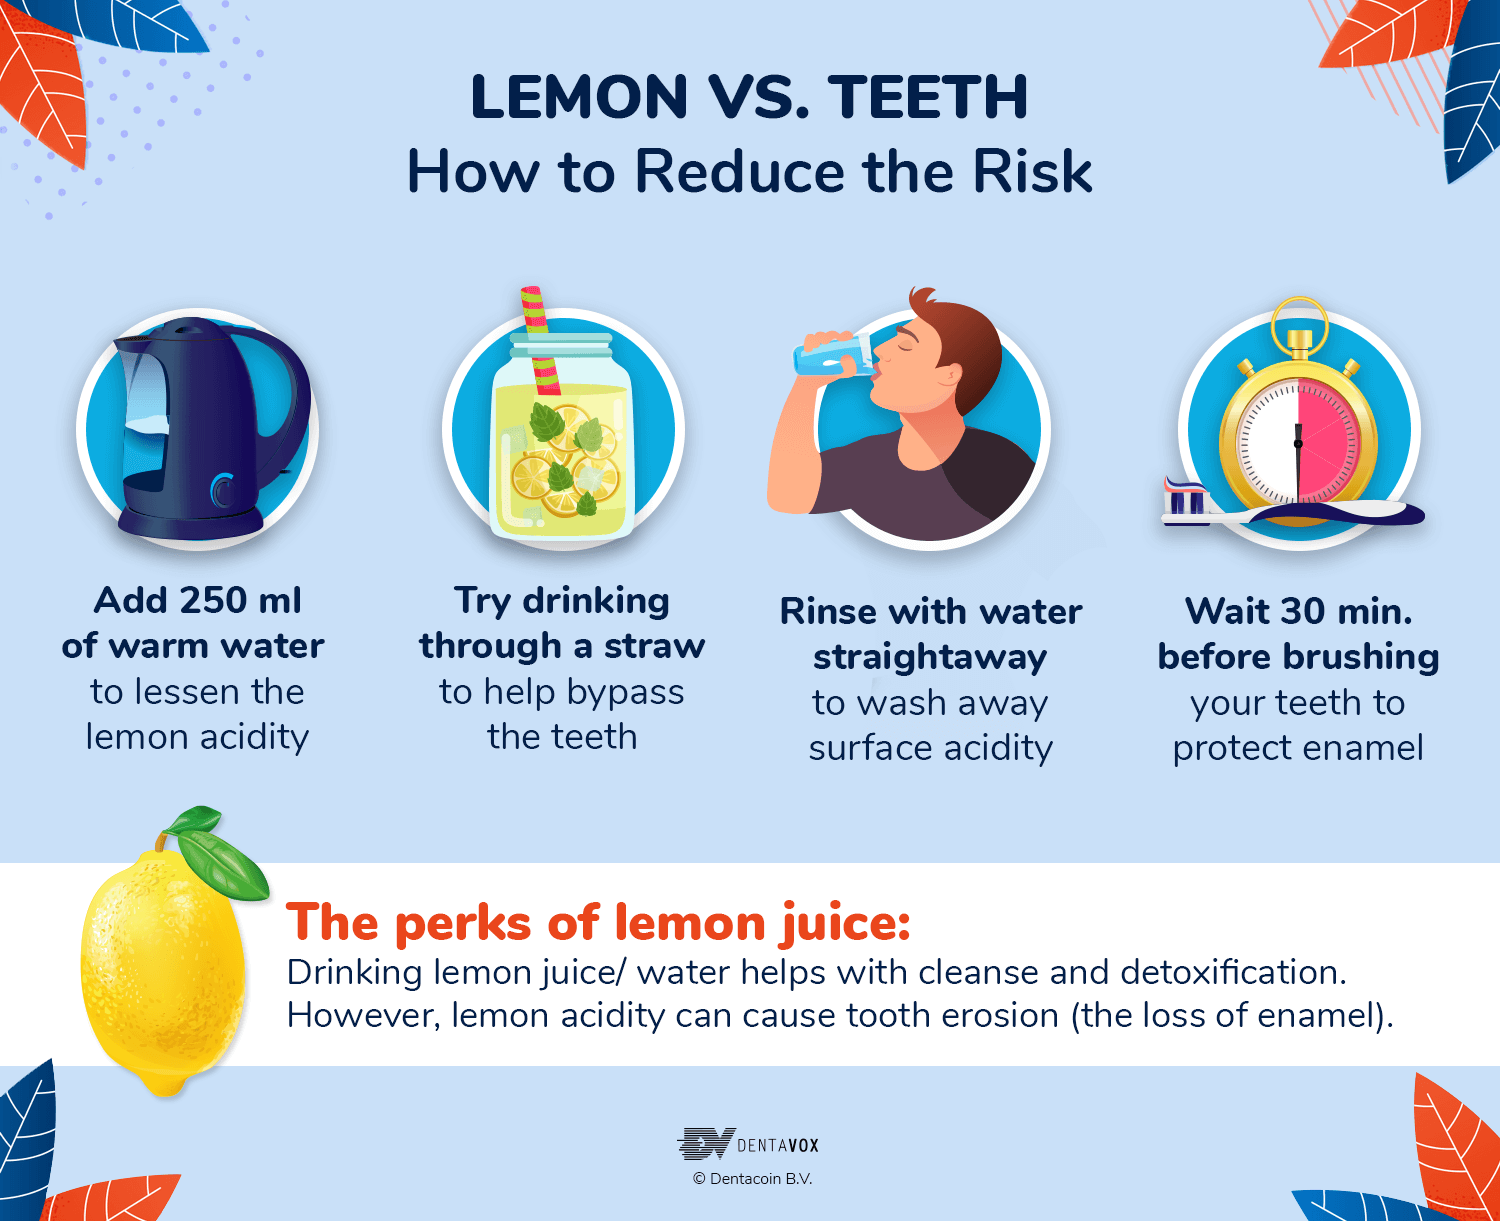 lemon oral health teeth tips dentavox